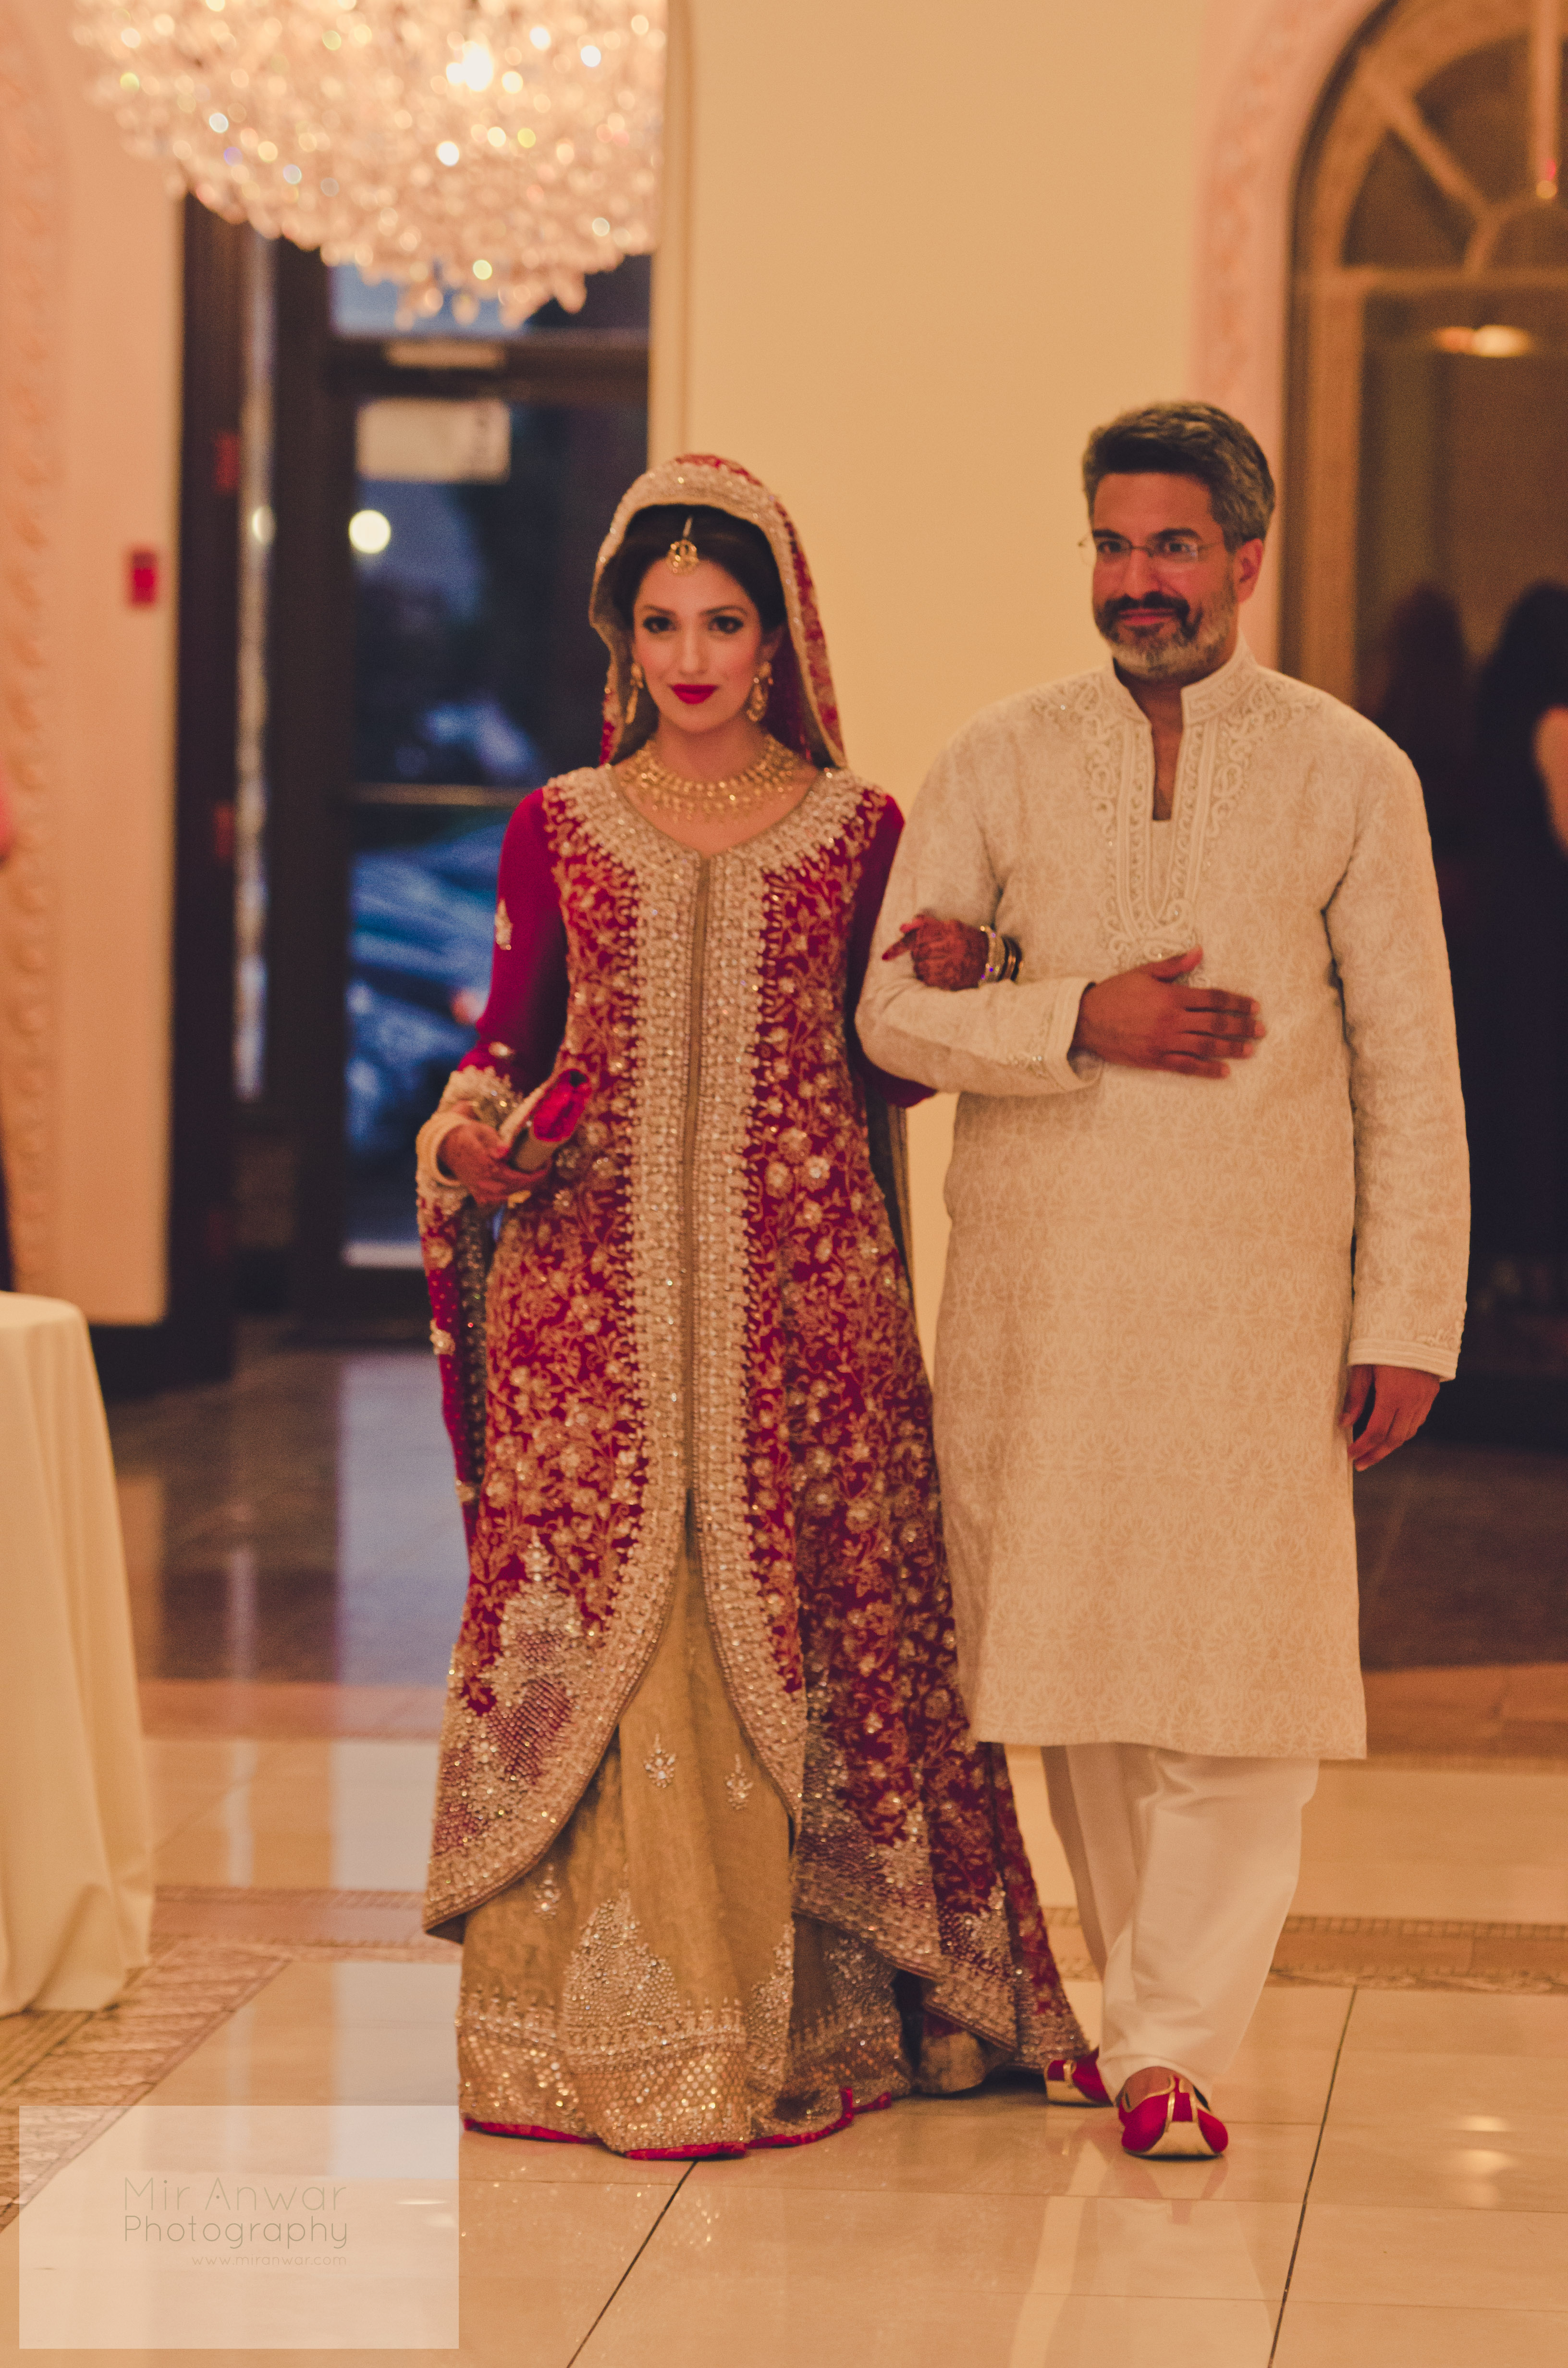 Wedding Gift For Groom In Pakistan : Wedding Day 2: A Glimpse Into My Big Fat Pakistani Wedding ...